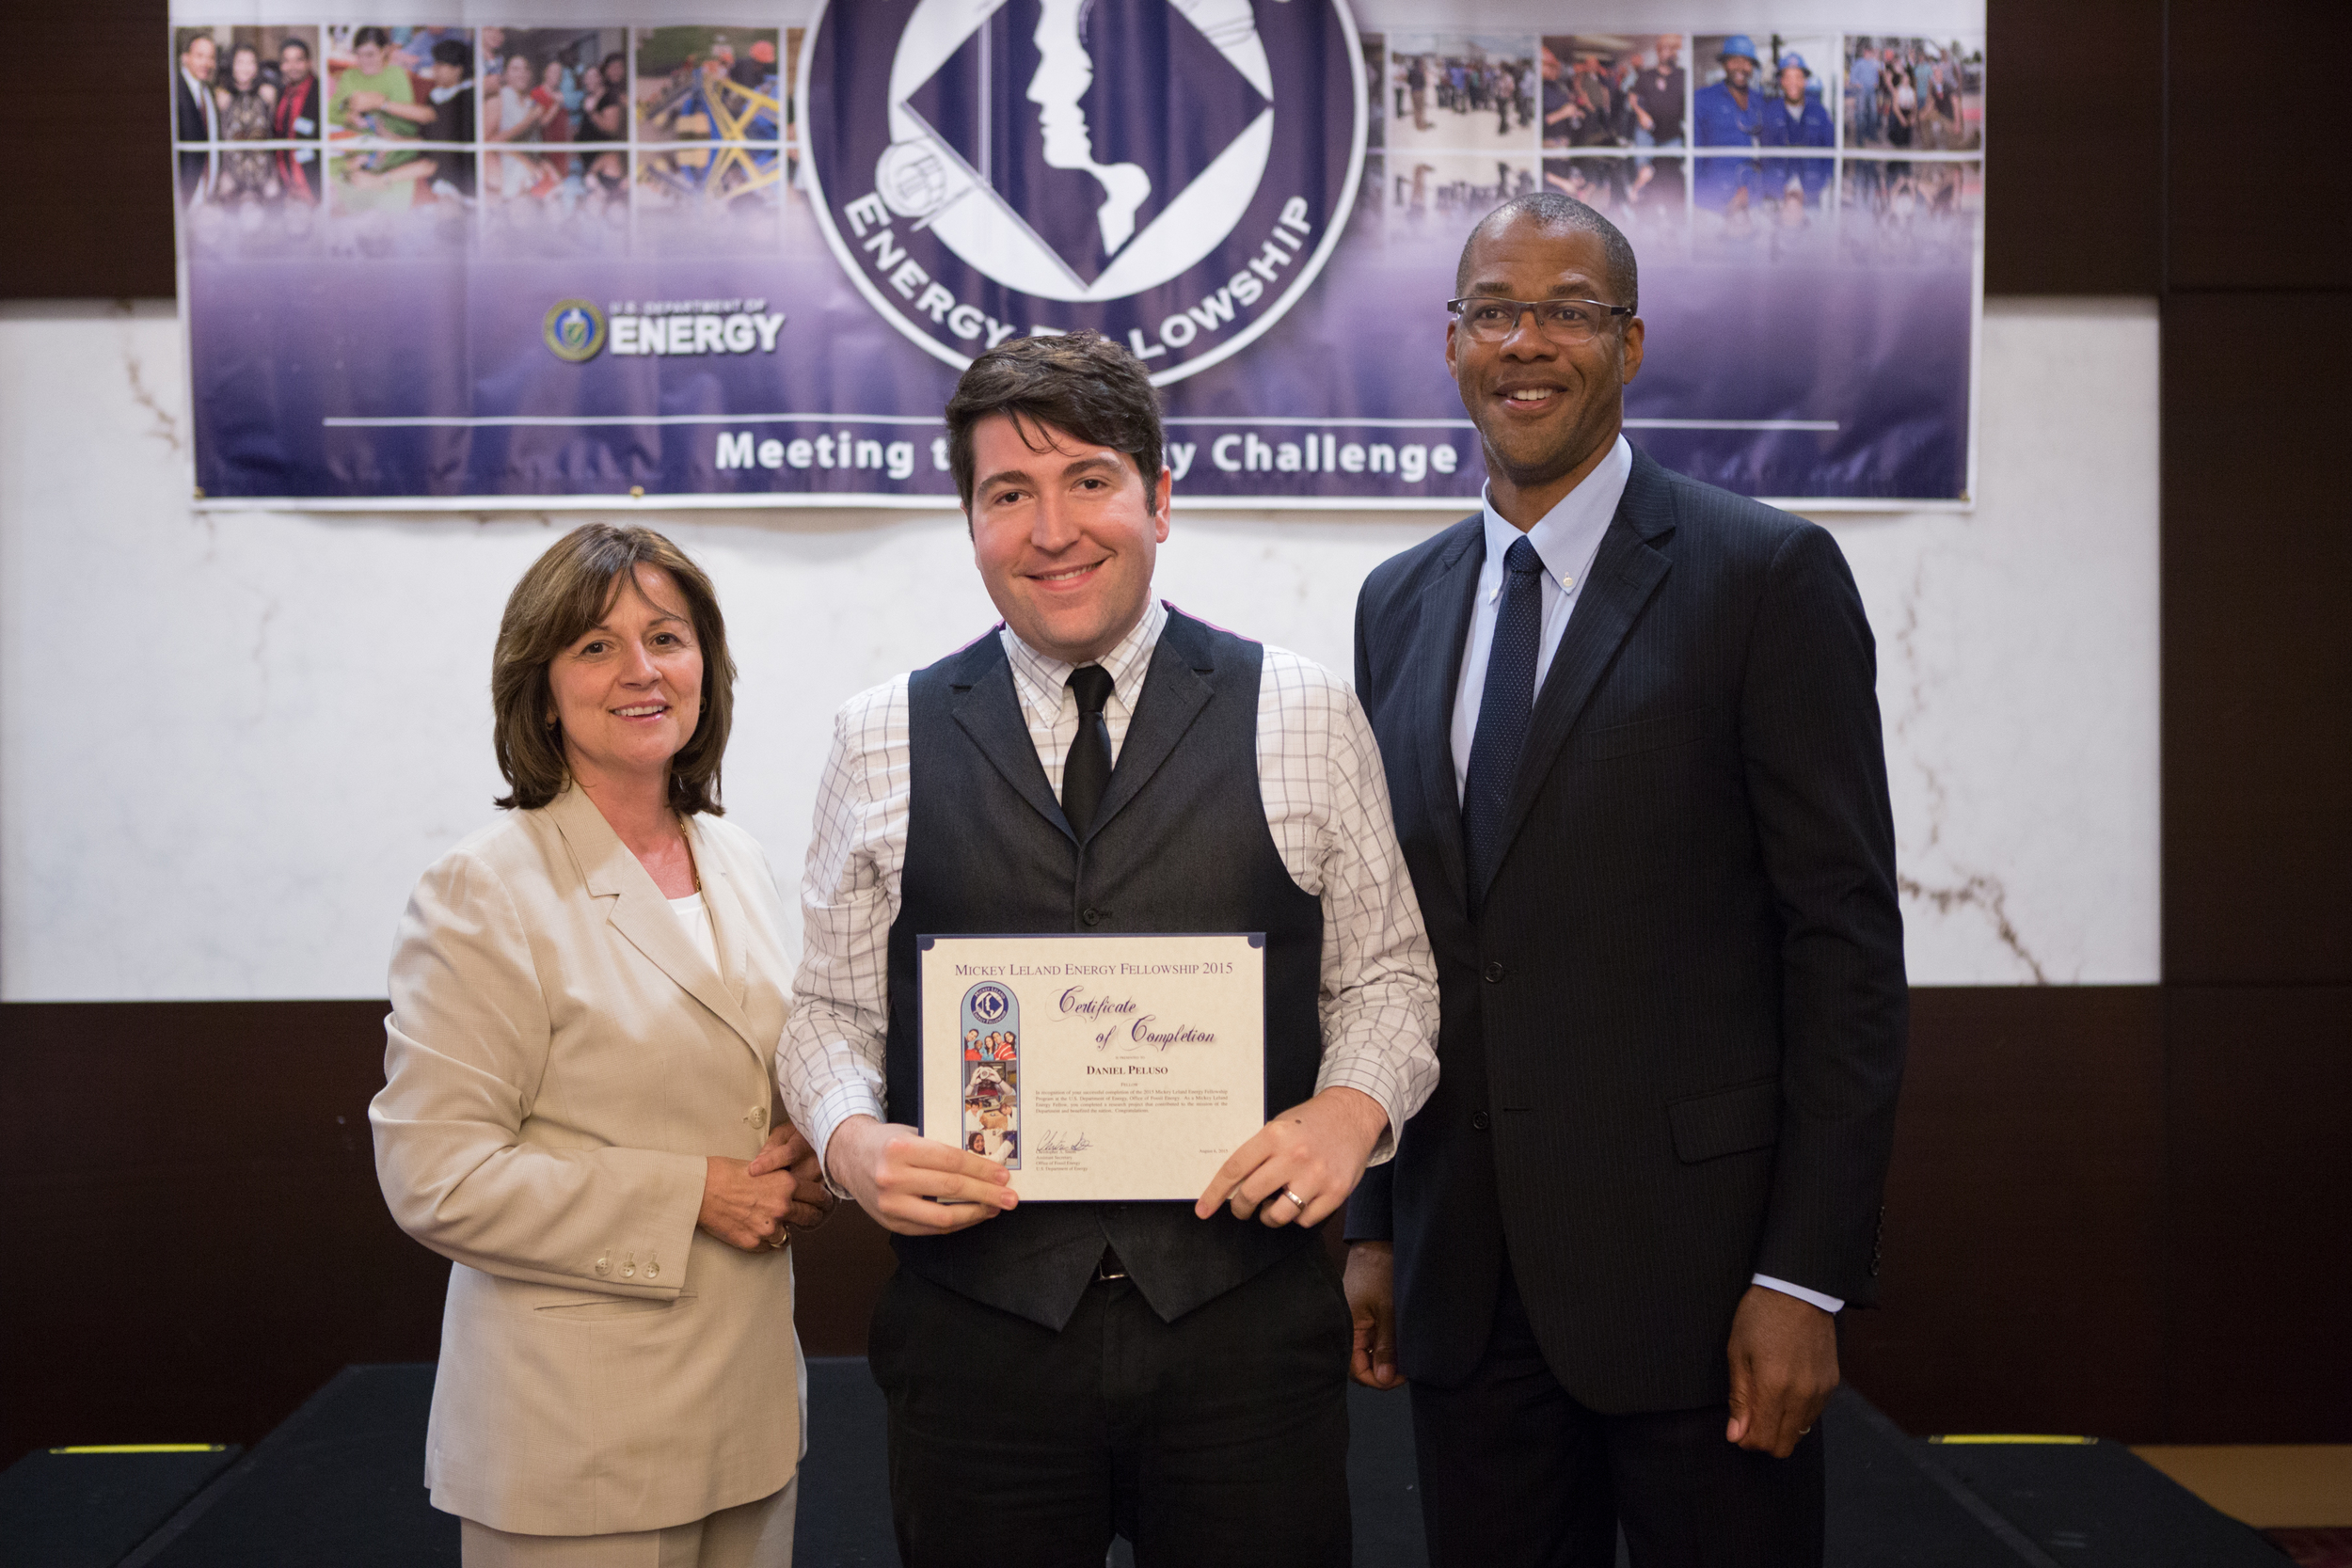 Receiving my certificate of completion award for the Mickey Leland Energy Fellowship from director of NETL, Dr. Grace Bochenek, and the Assistant Secretary for the Office of Fossil Energy for the U.S. Dept. of Energy, Christopher Smith. August 2015.